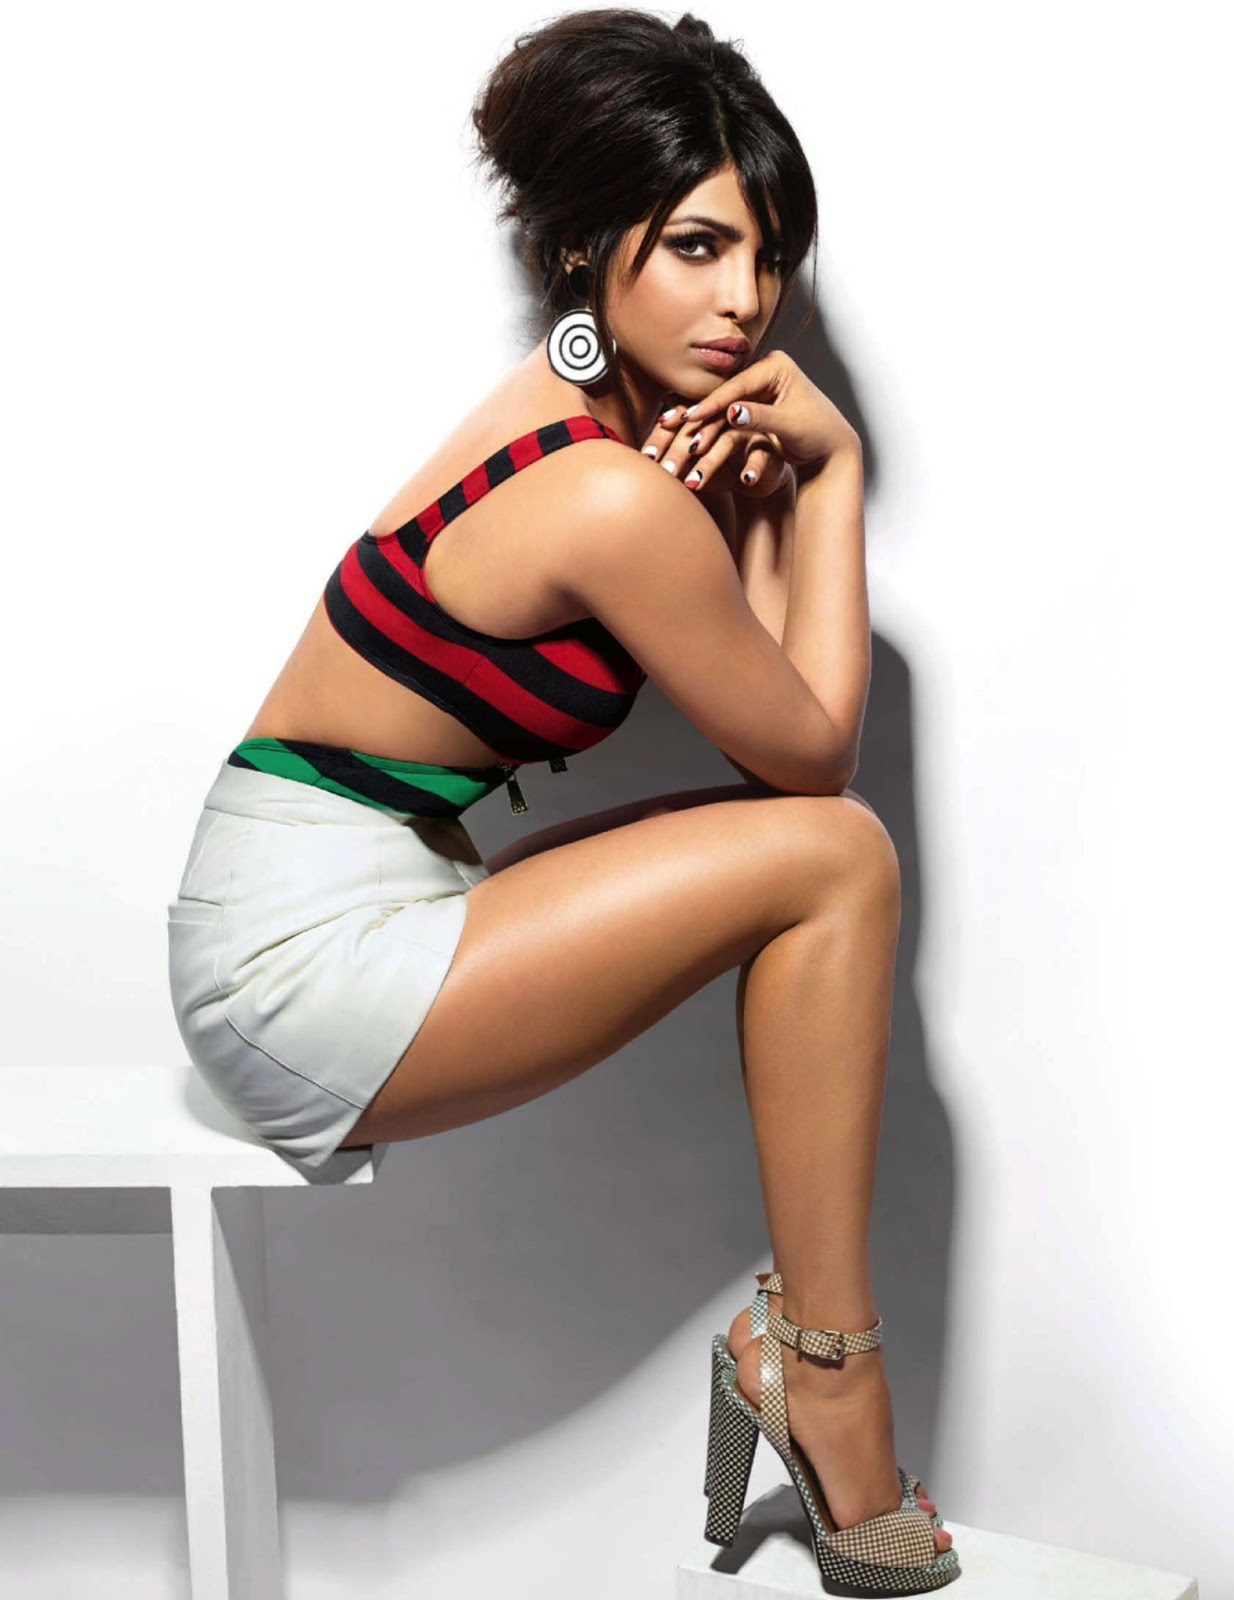 Priyanka Chopra Gallery Bollywood Actress Gallery stills  - priyanka chopra indian actress wallpapers